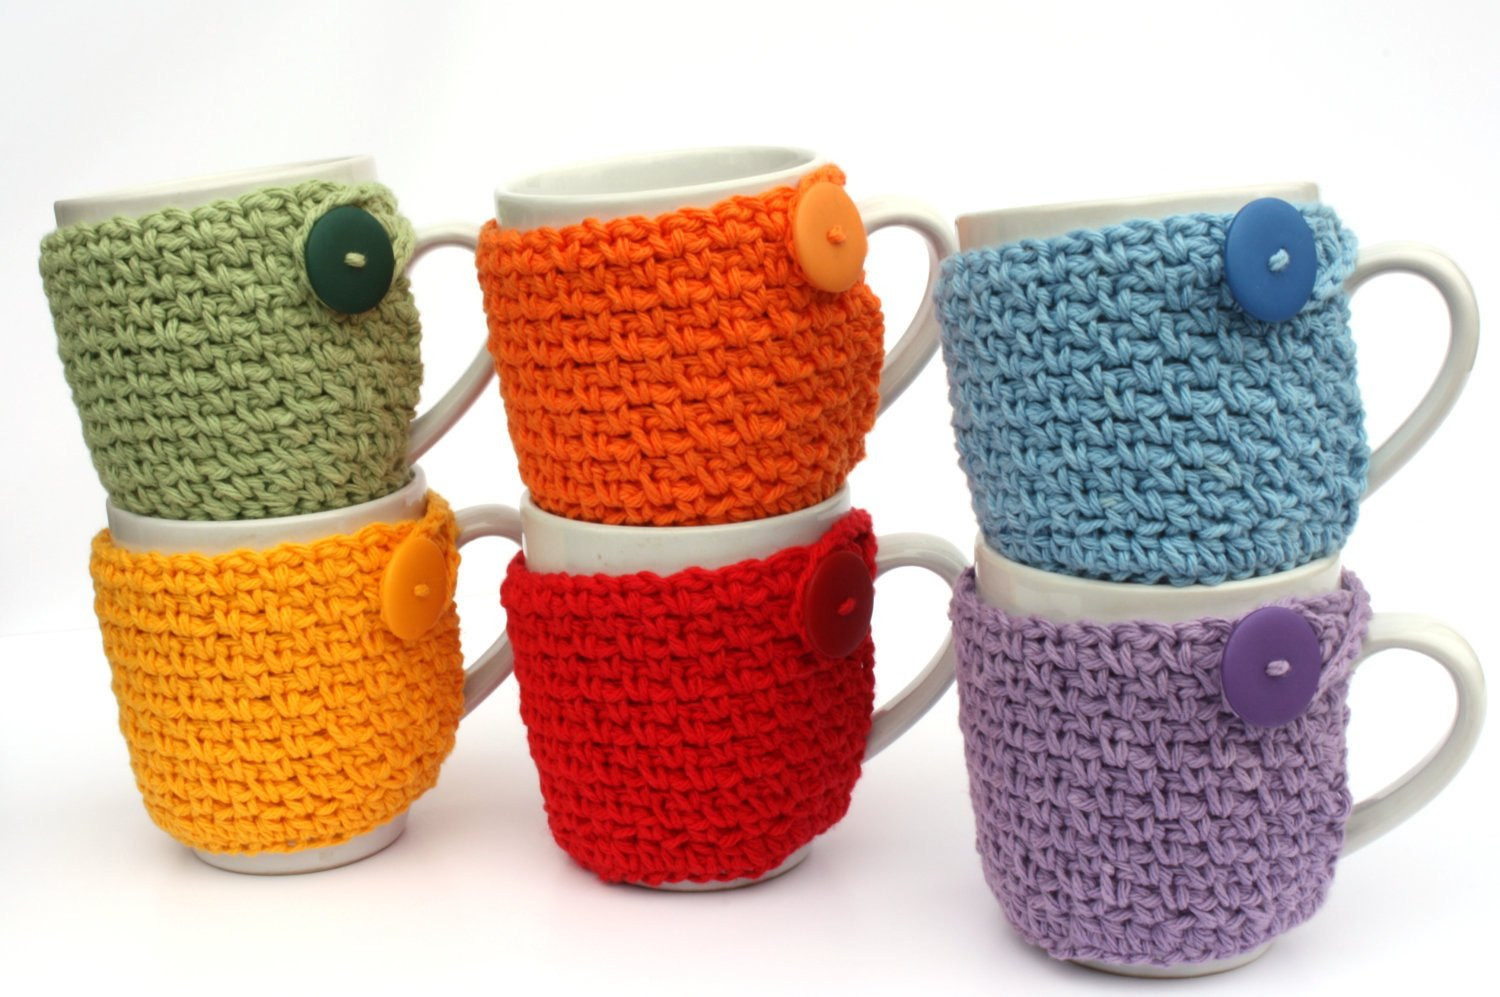 Crochet Coffee Cup Cozy Lovely Coffee Cup Cozy Crochet Cup Sleeve You Pick the by Sweetbriers Of Crochet Coffee Cup Cozy Luxury Pdf Crochet Pattern Coffee Mug Cozy with button by